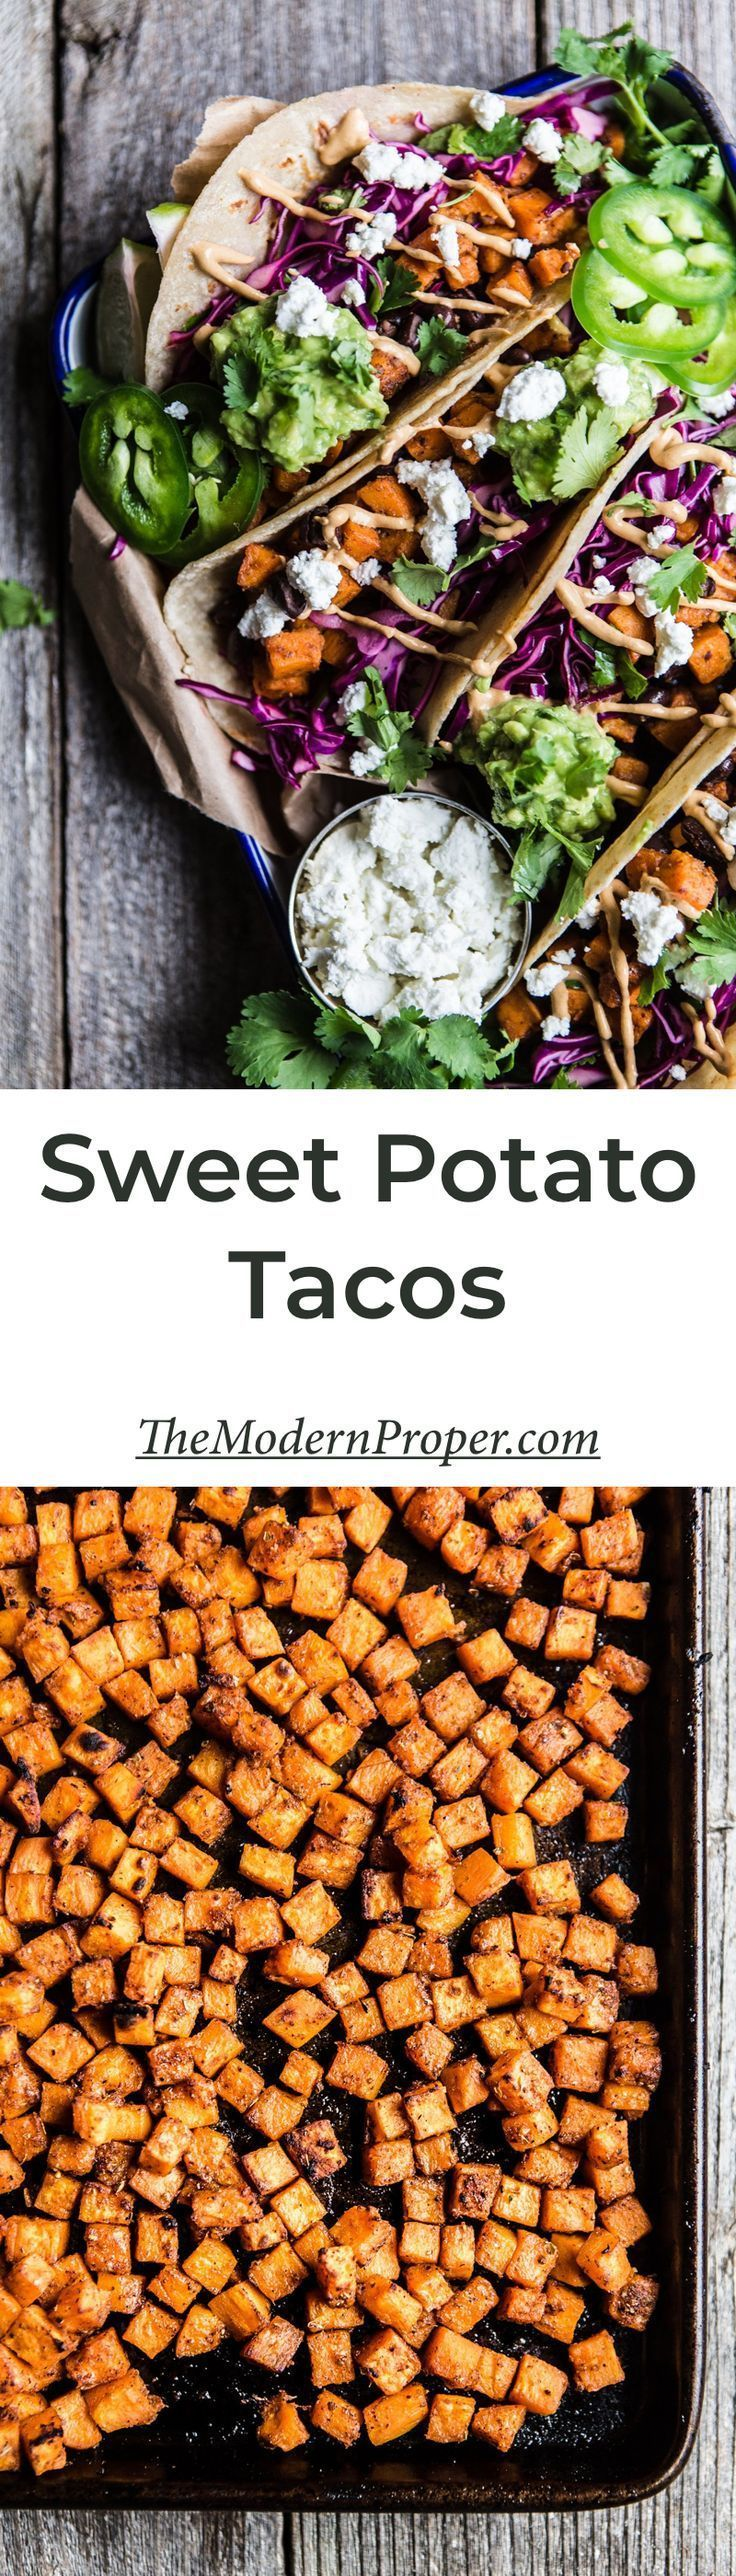 Vegetarian Sweet Potato Tacos with Chipotle Crema #tacos #dinner #recipe